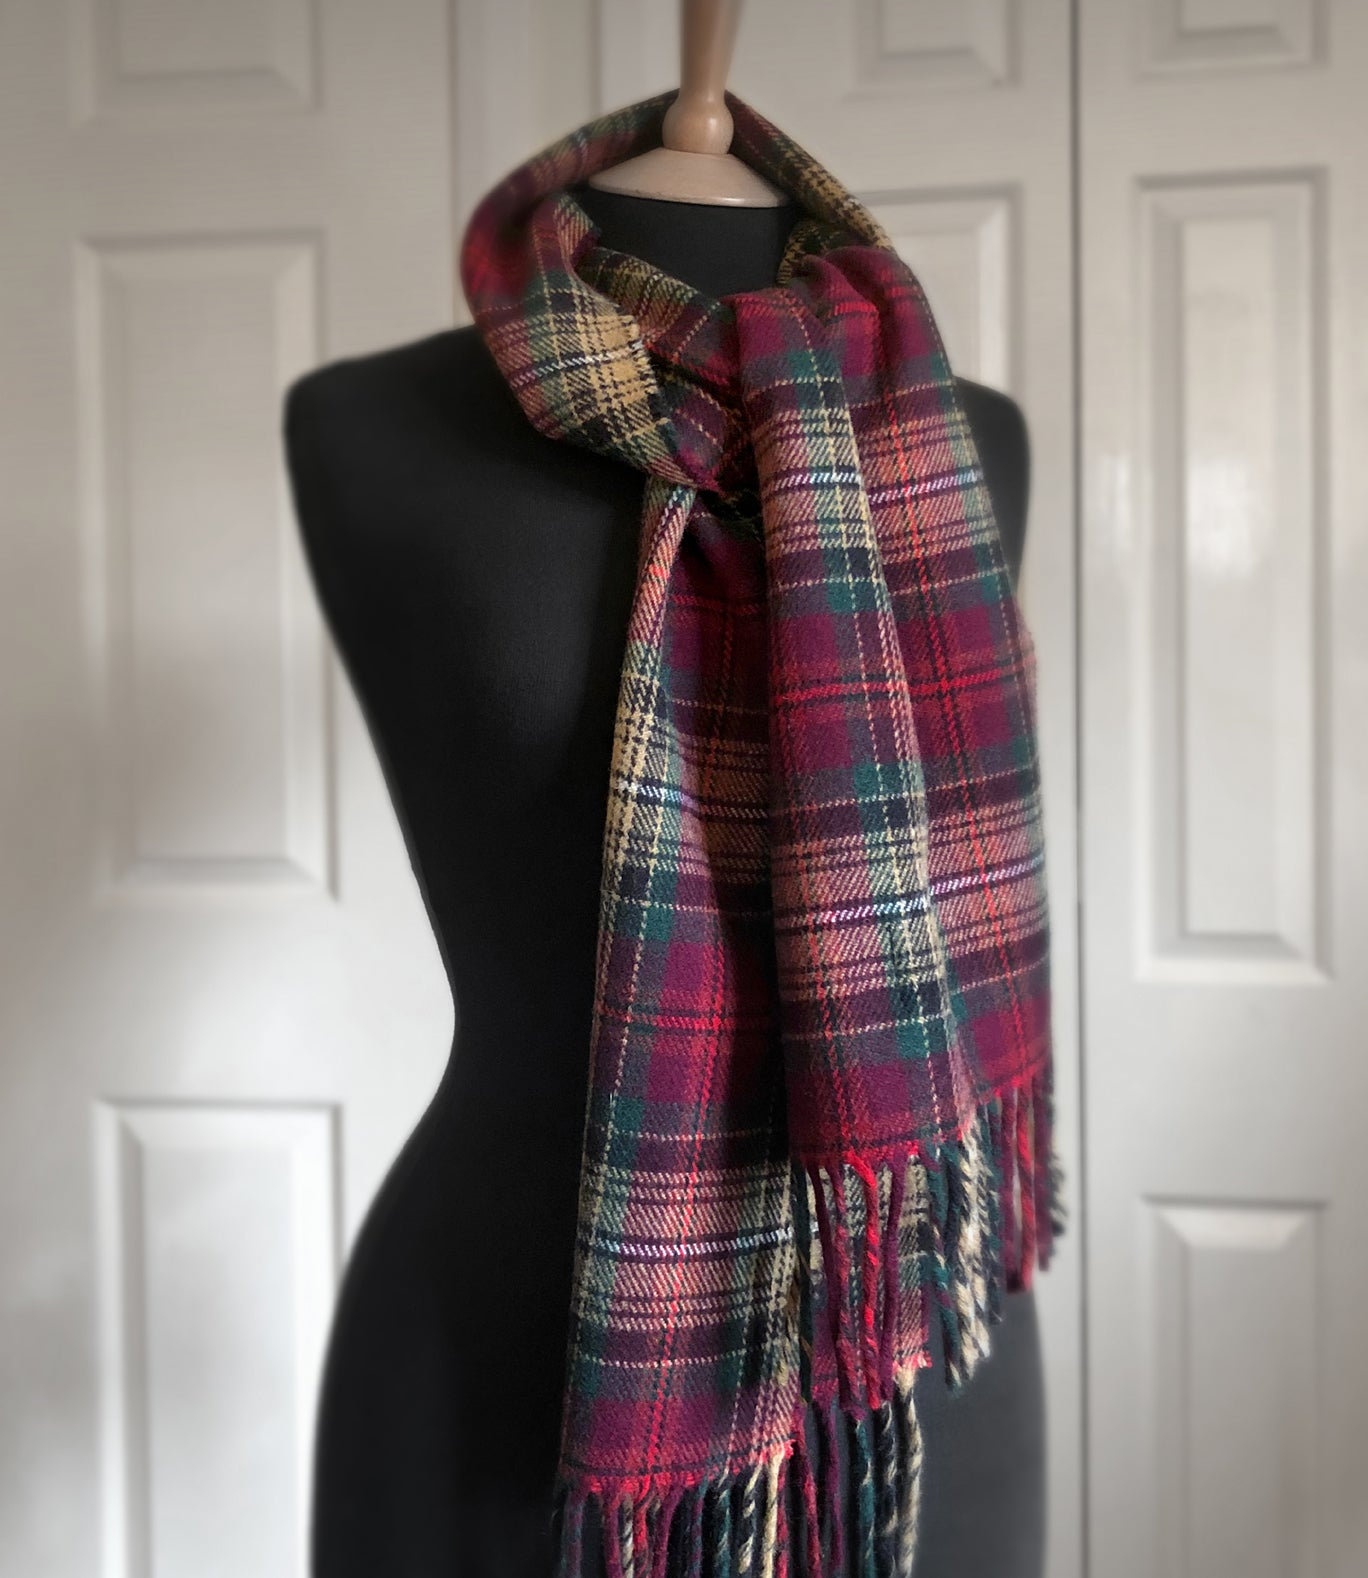 Declaration of Arbroath 7th Centennial Anniversary Merino Wool Scarf